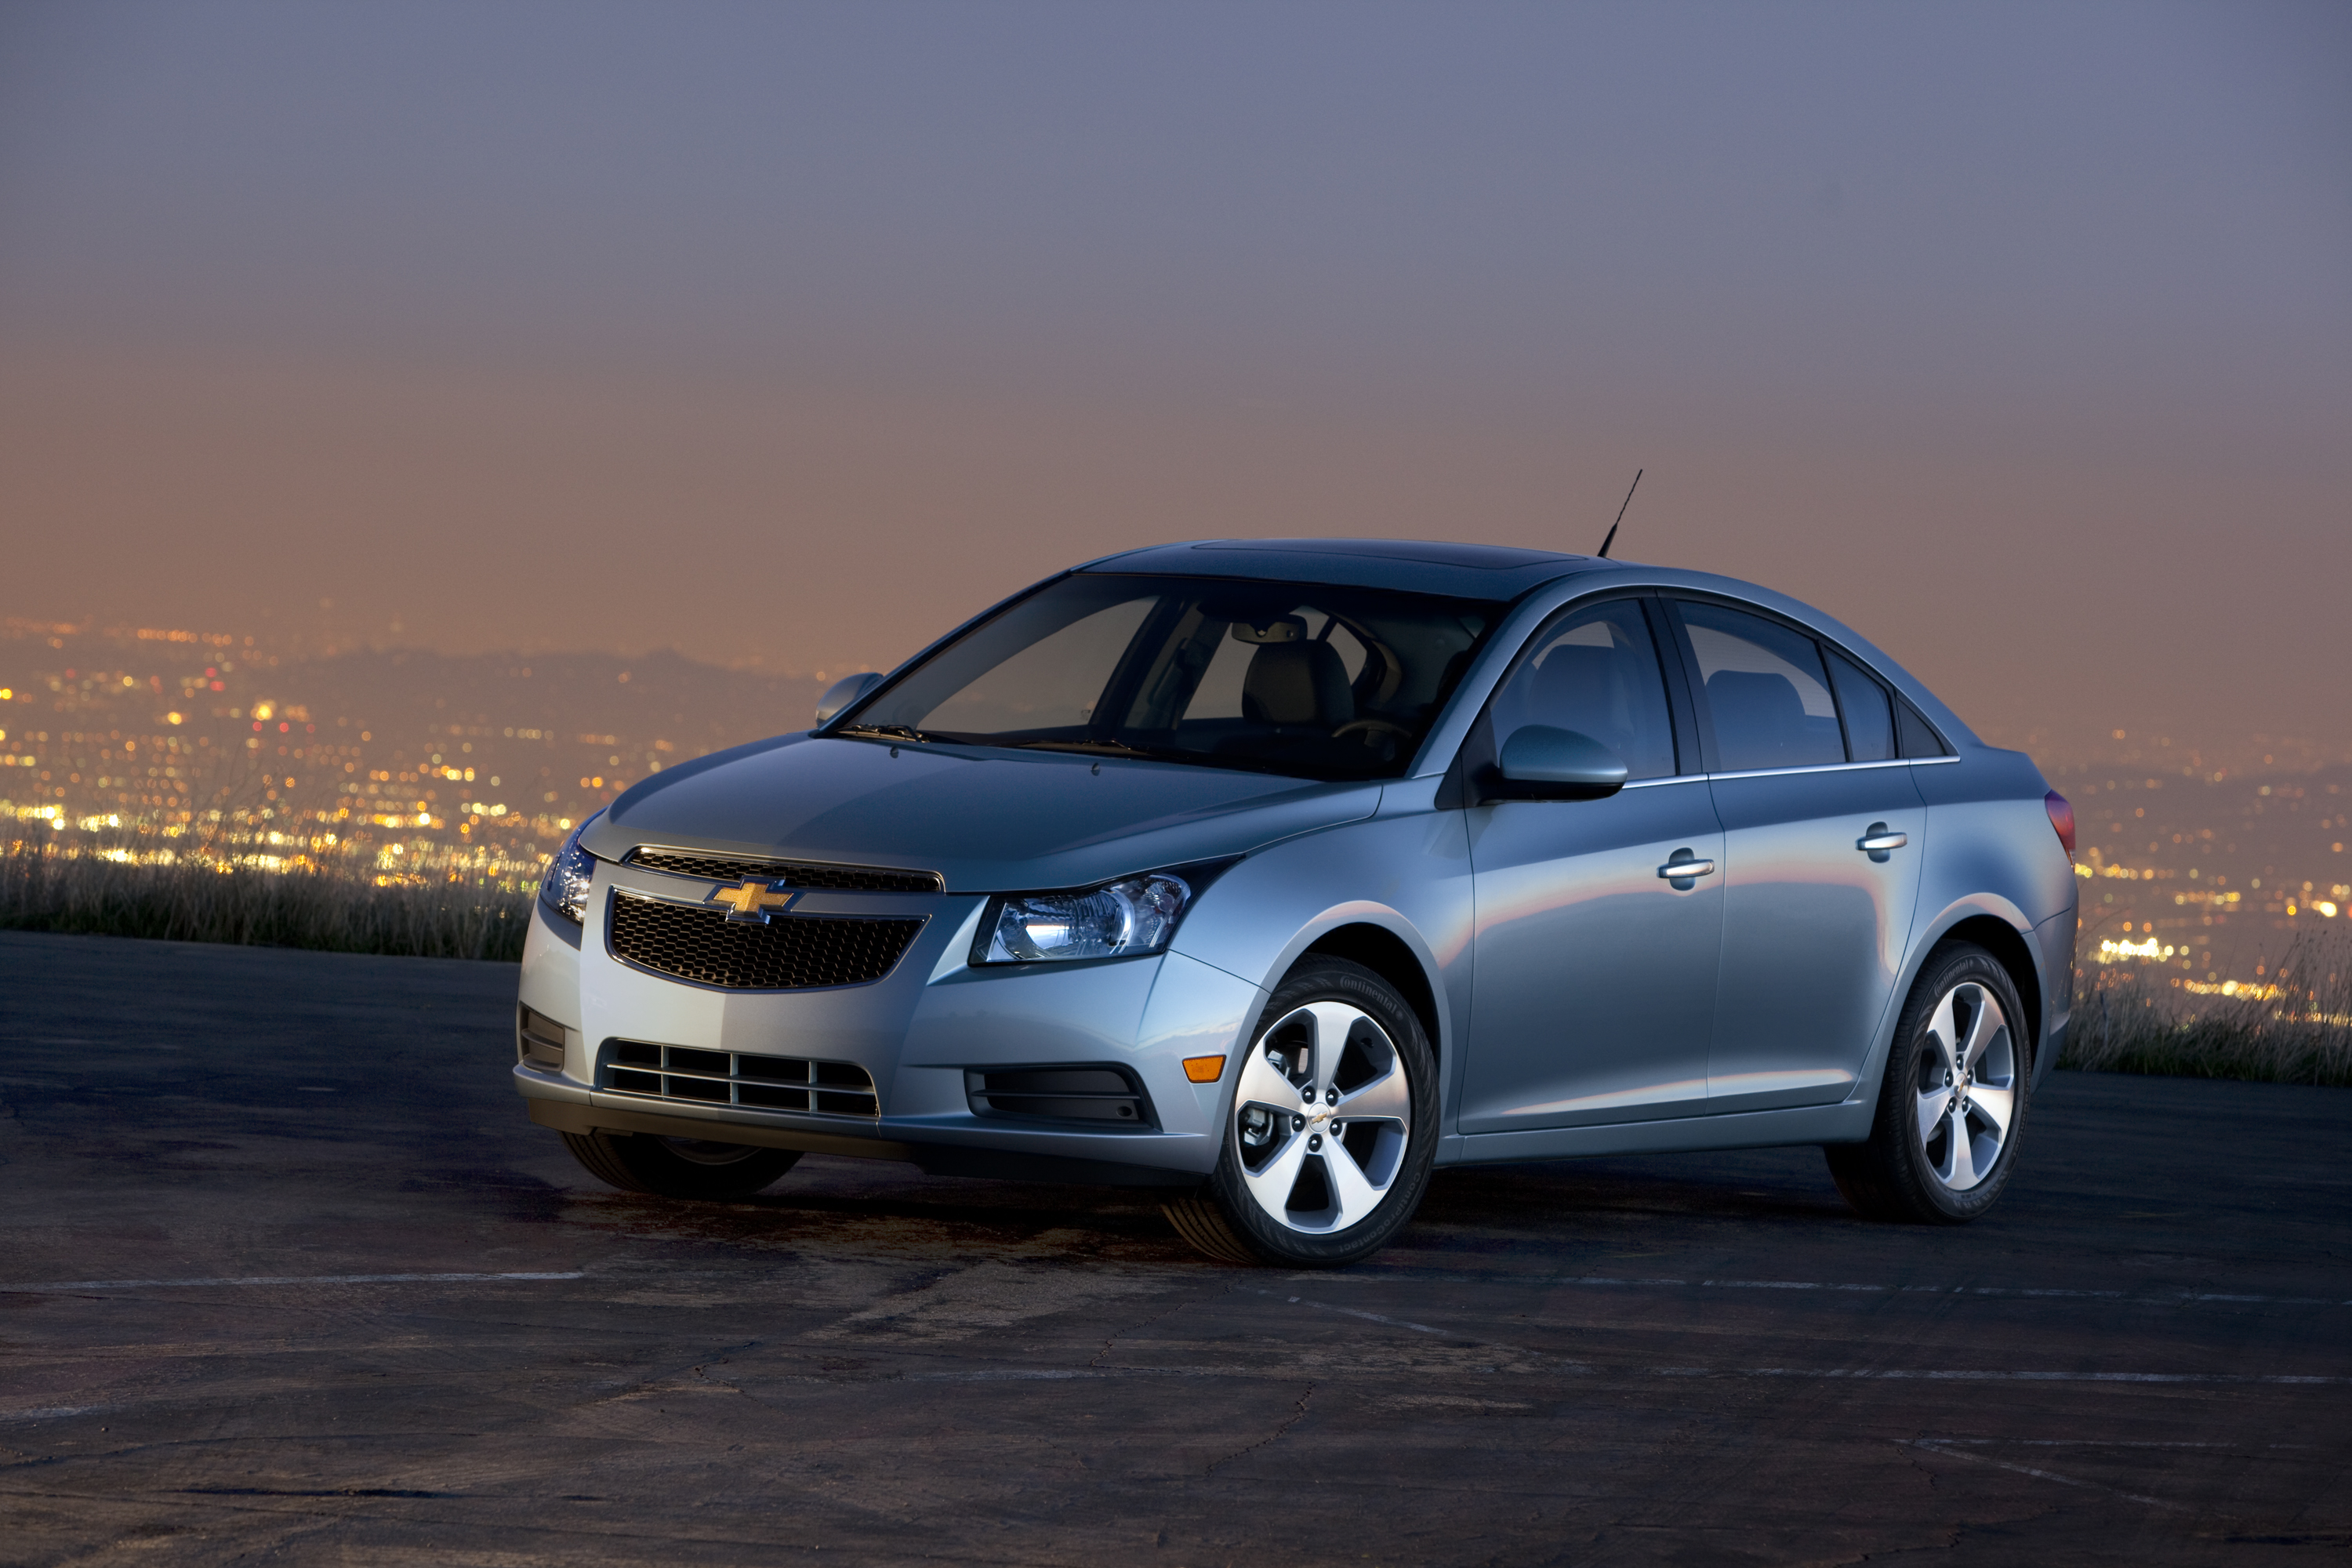 2011 Chevrolet Cruze Chevy Review Ratings Specs